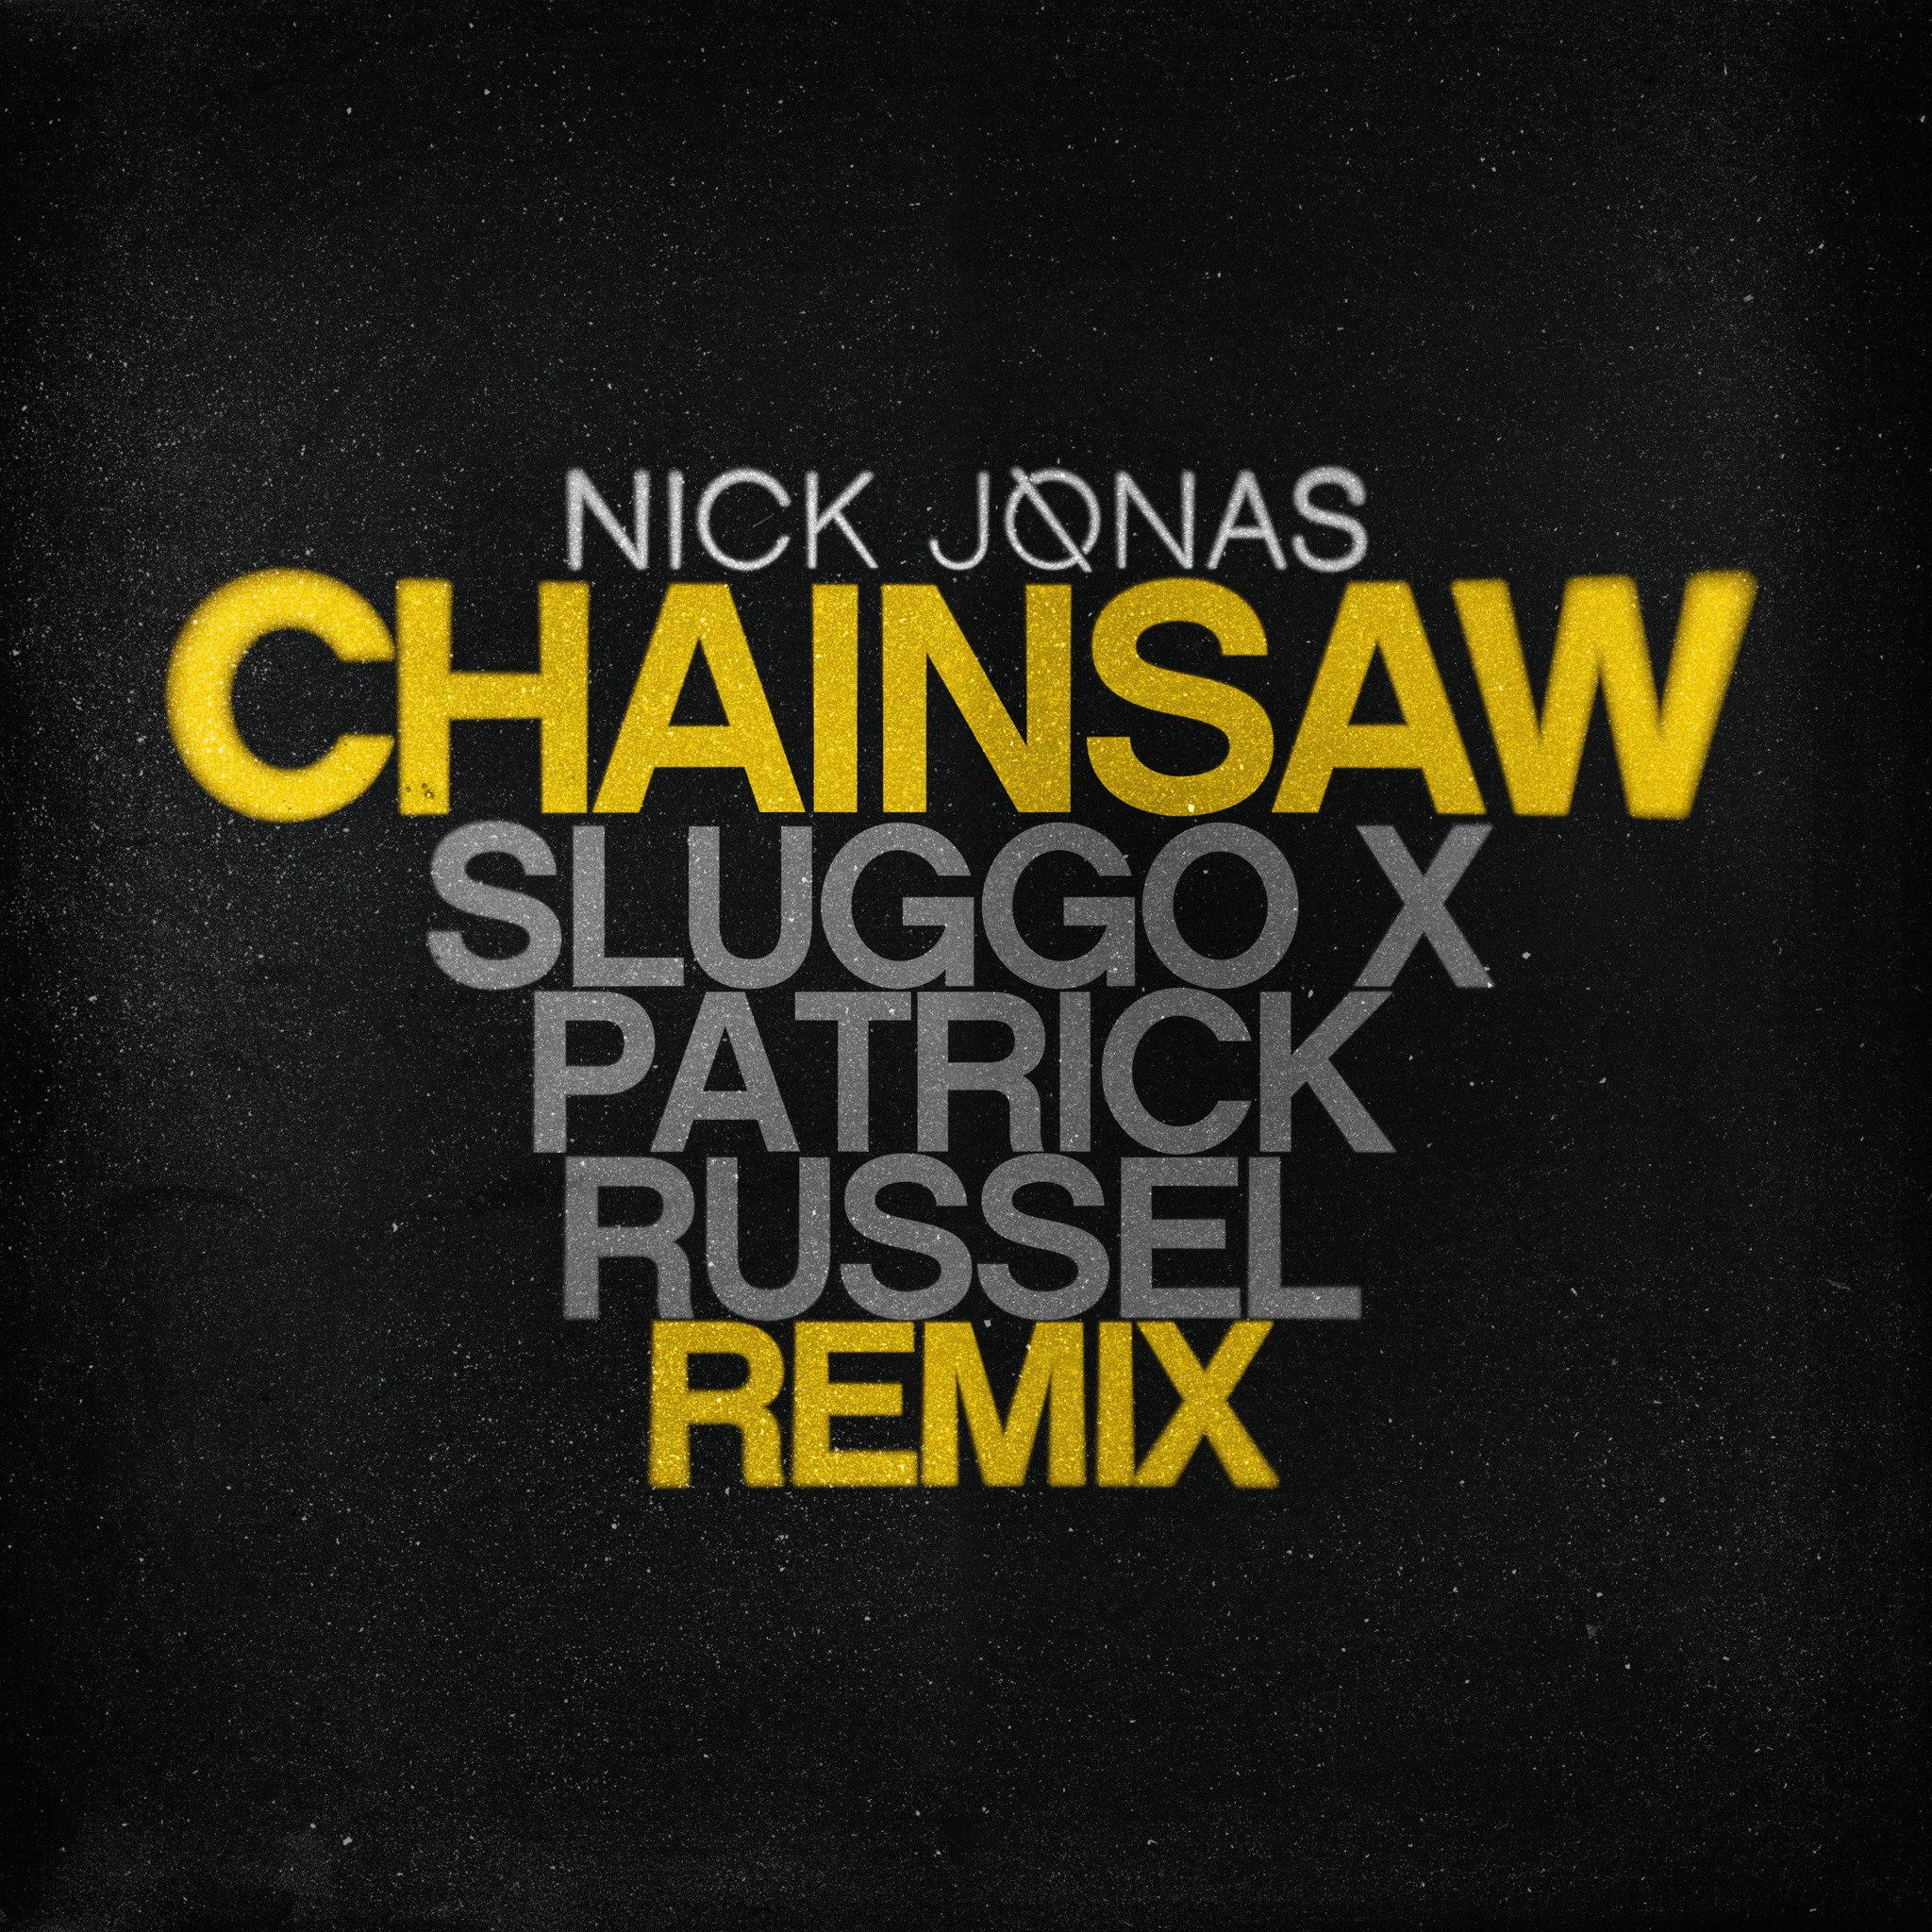 The official @SluggoDubstep x @ptrckrssll #Chainsaw remix is here. It's sick. Listen now: https://t.co/3AbXVKAPOC https://t.co/4D8DA6acBW